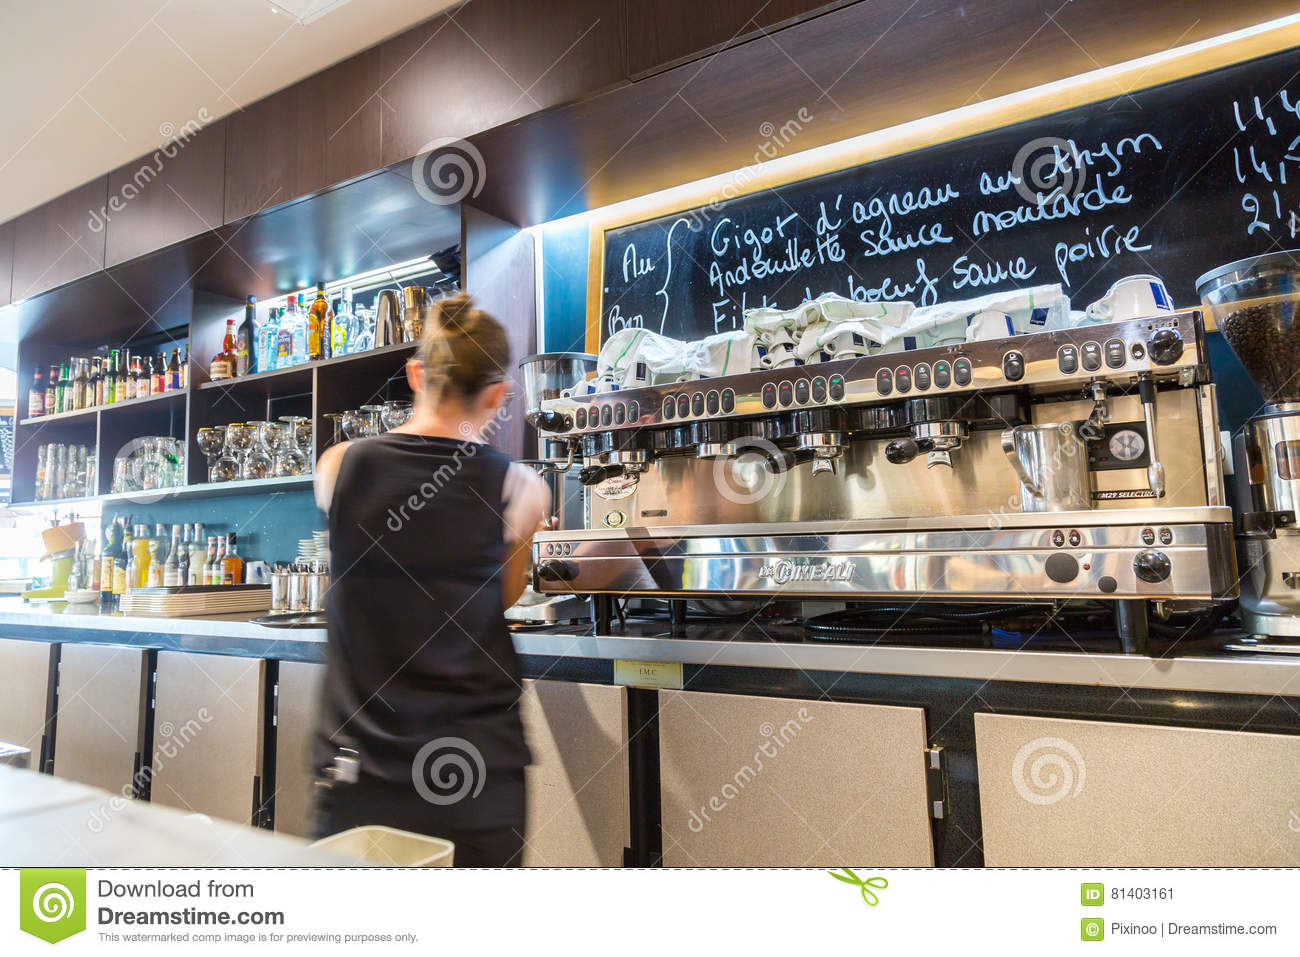 La defense, France - July 17, 2016: blurry barmaid in big traditional french restaurant in la defense city, the greatest business